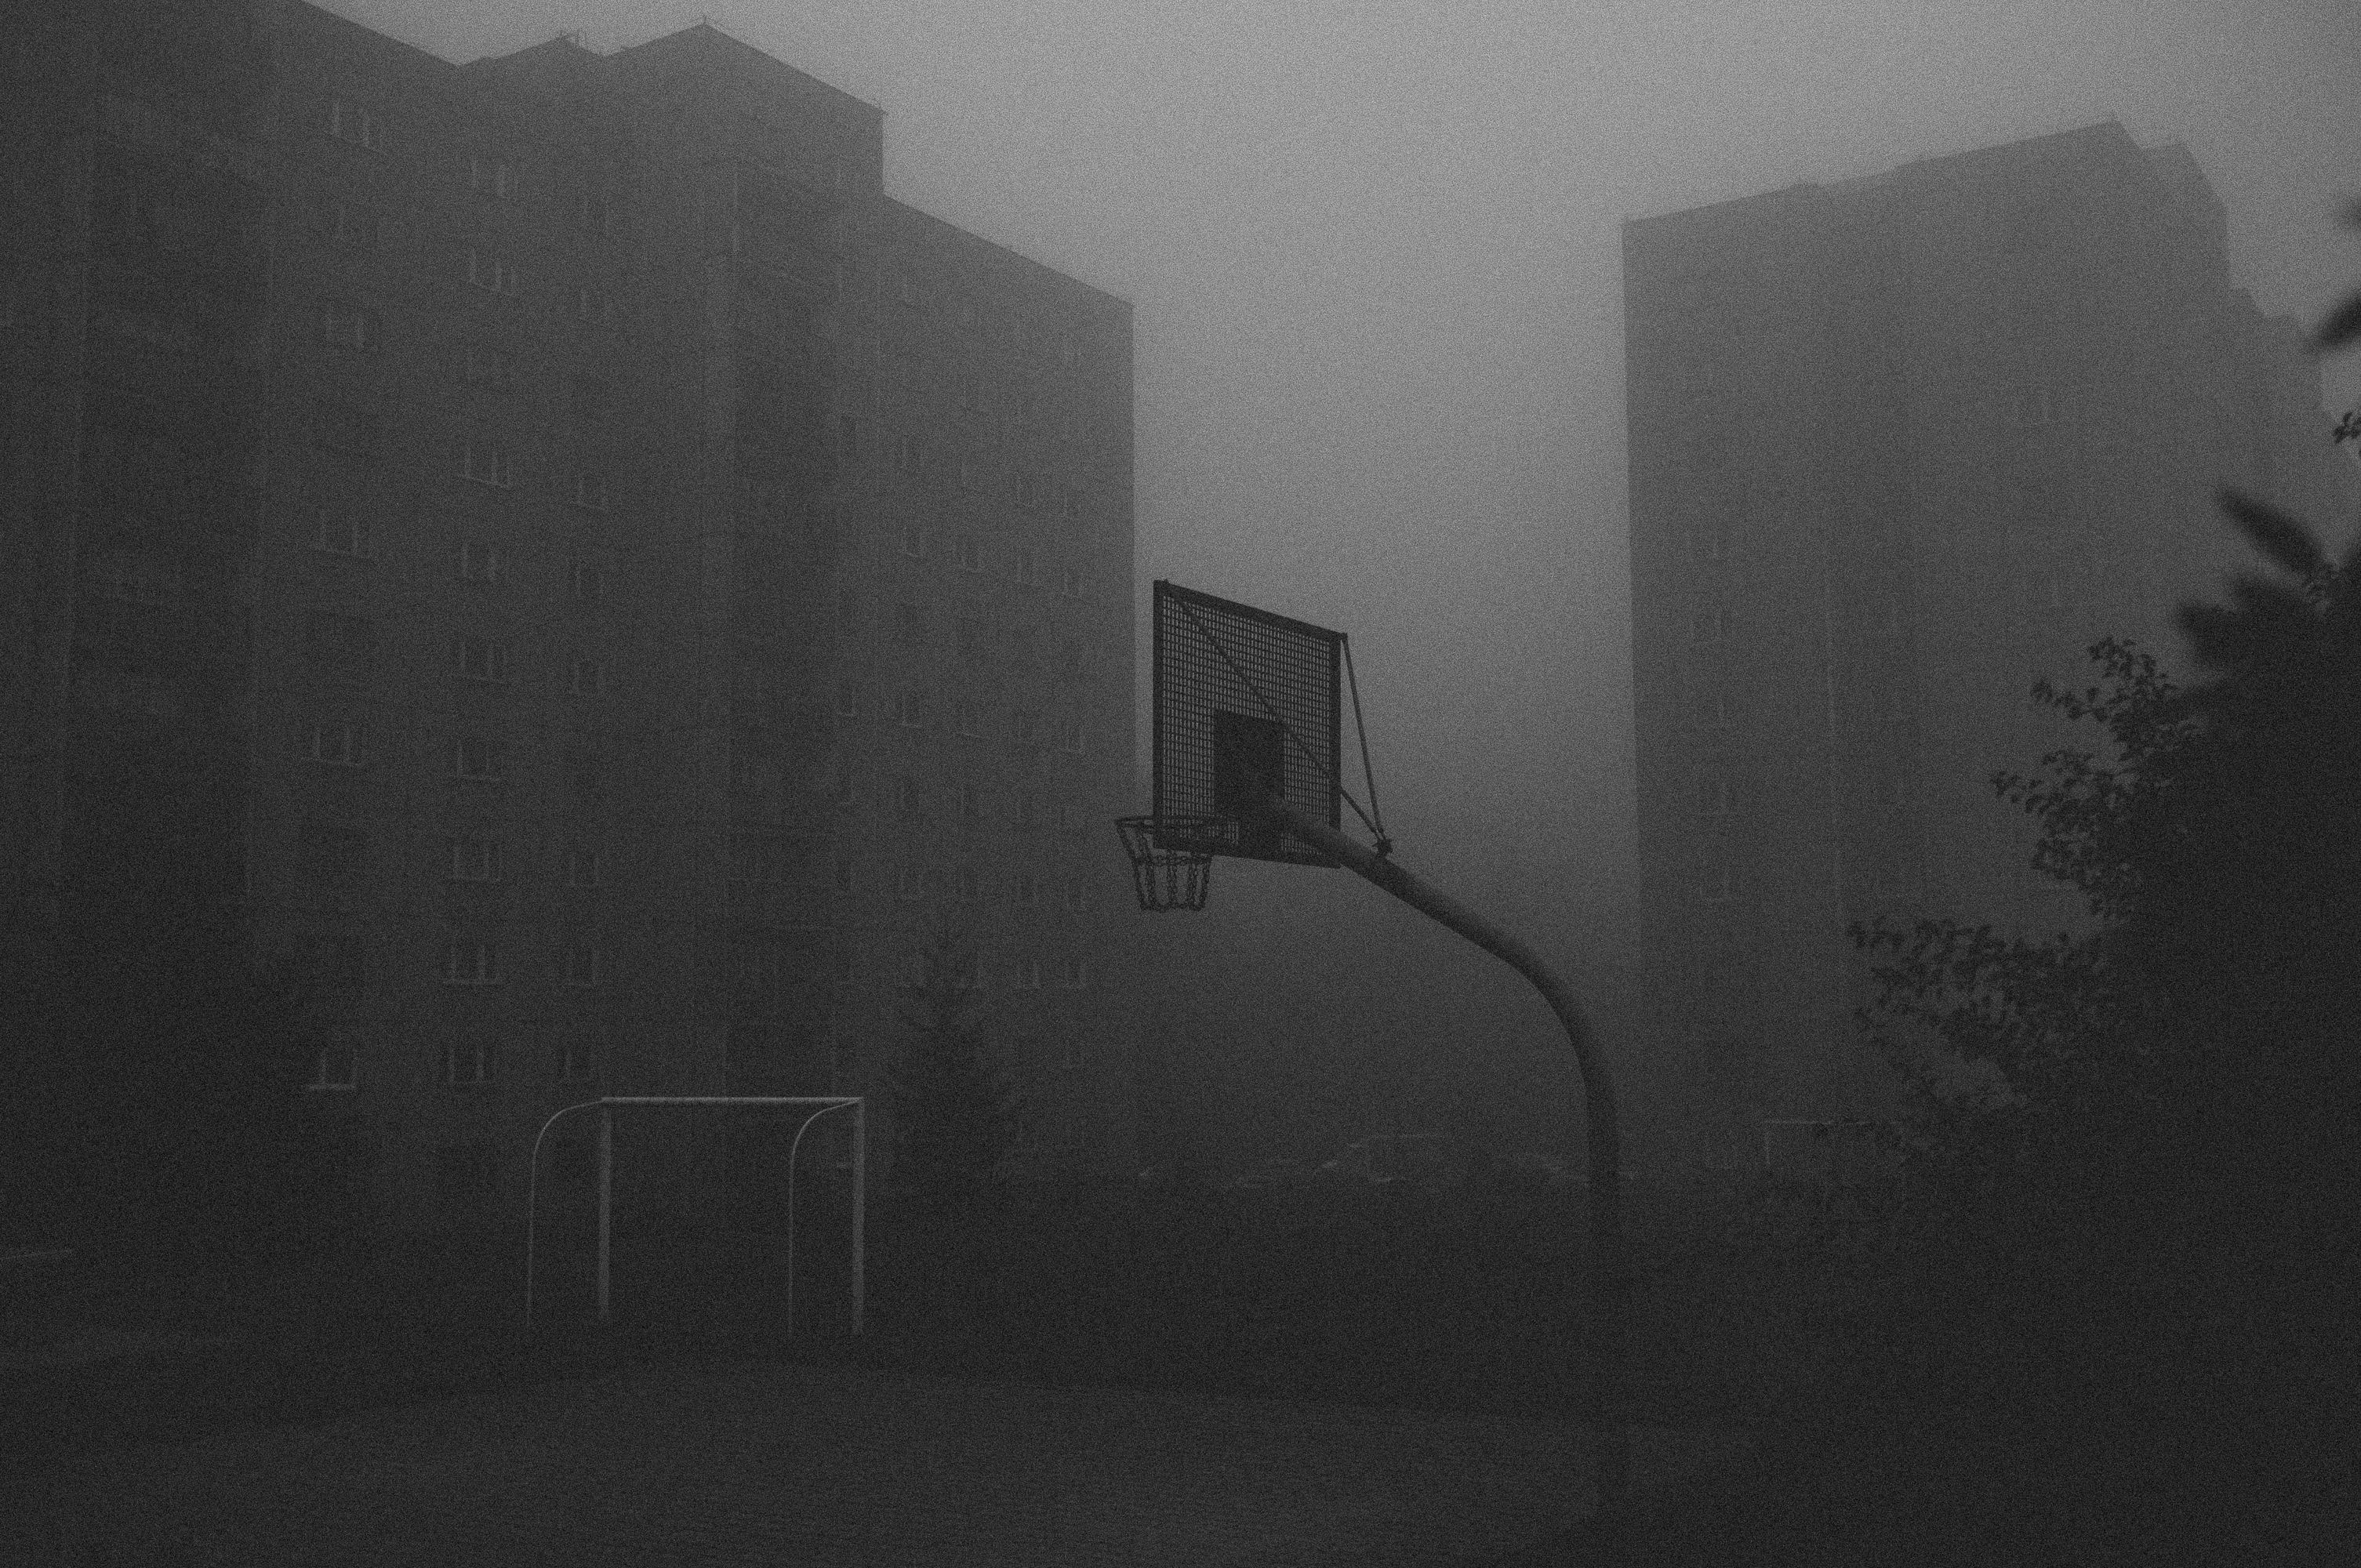 Smoky Basketball Court